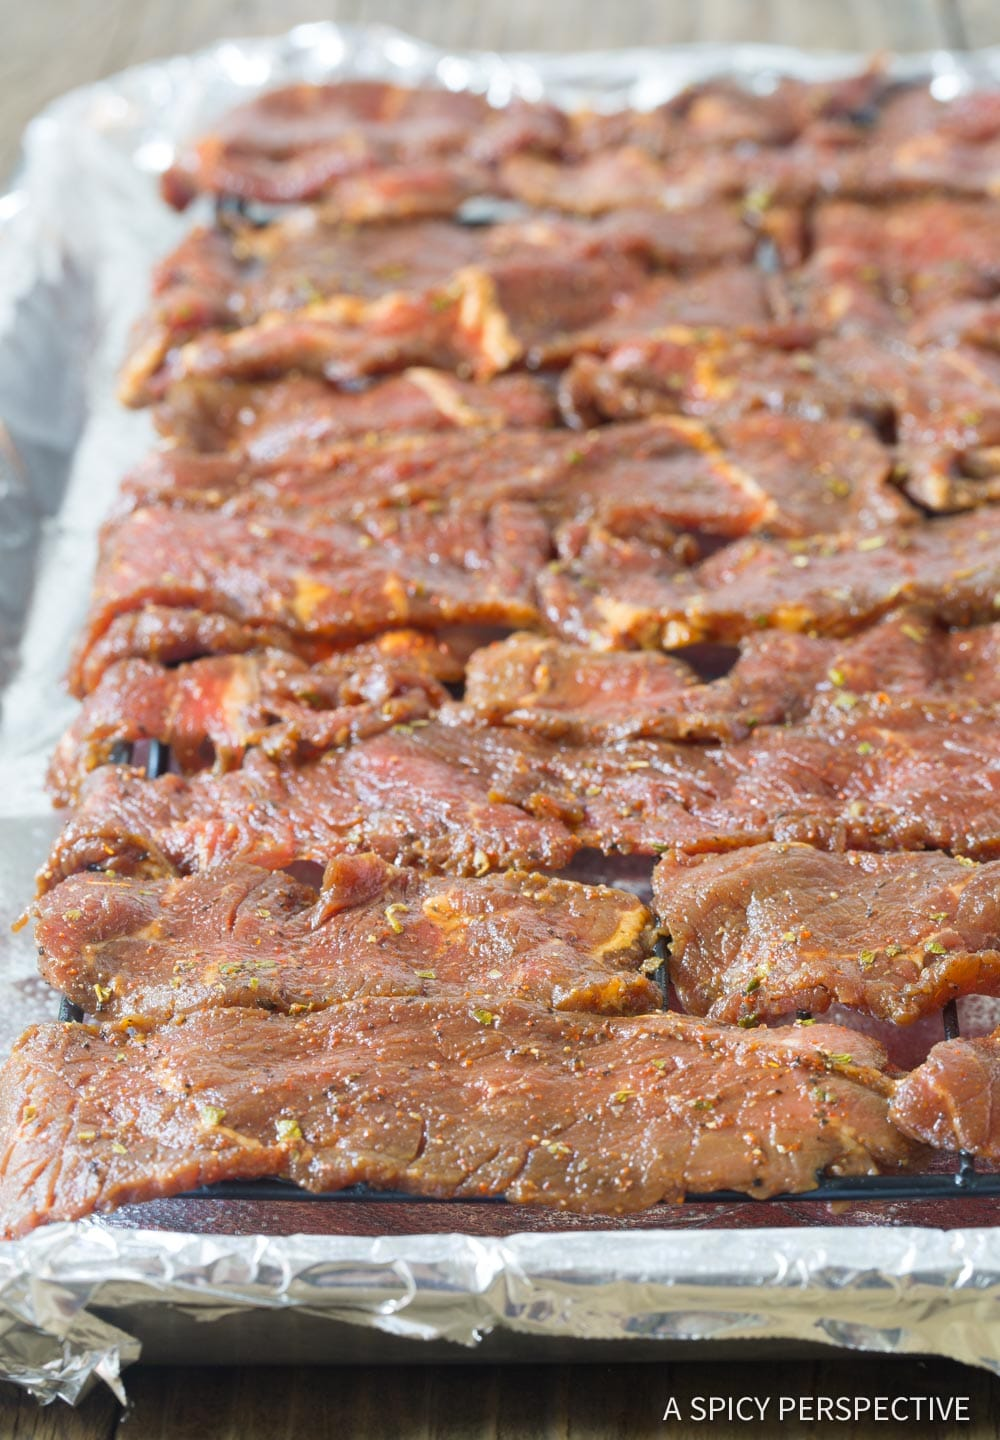 How To: Best Homemade Oven Beef Jerky #Keto #Paleo #ASpicyPerspective